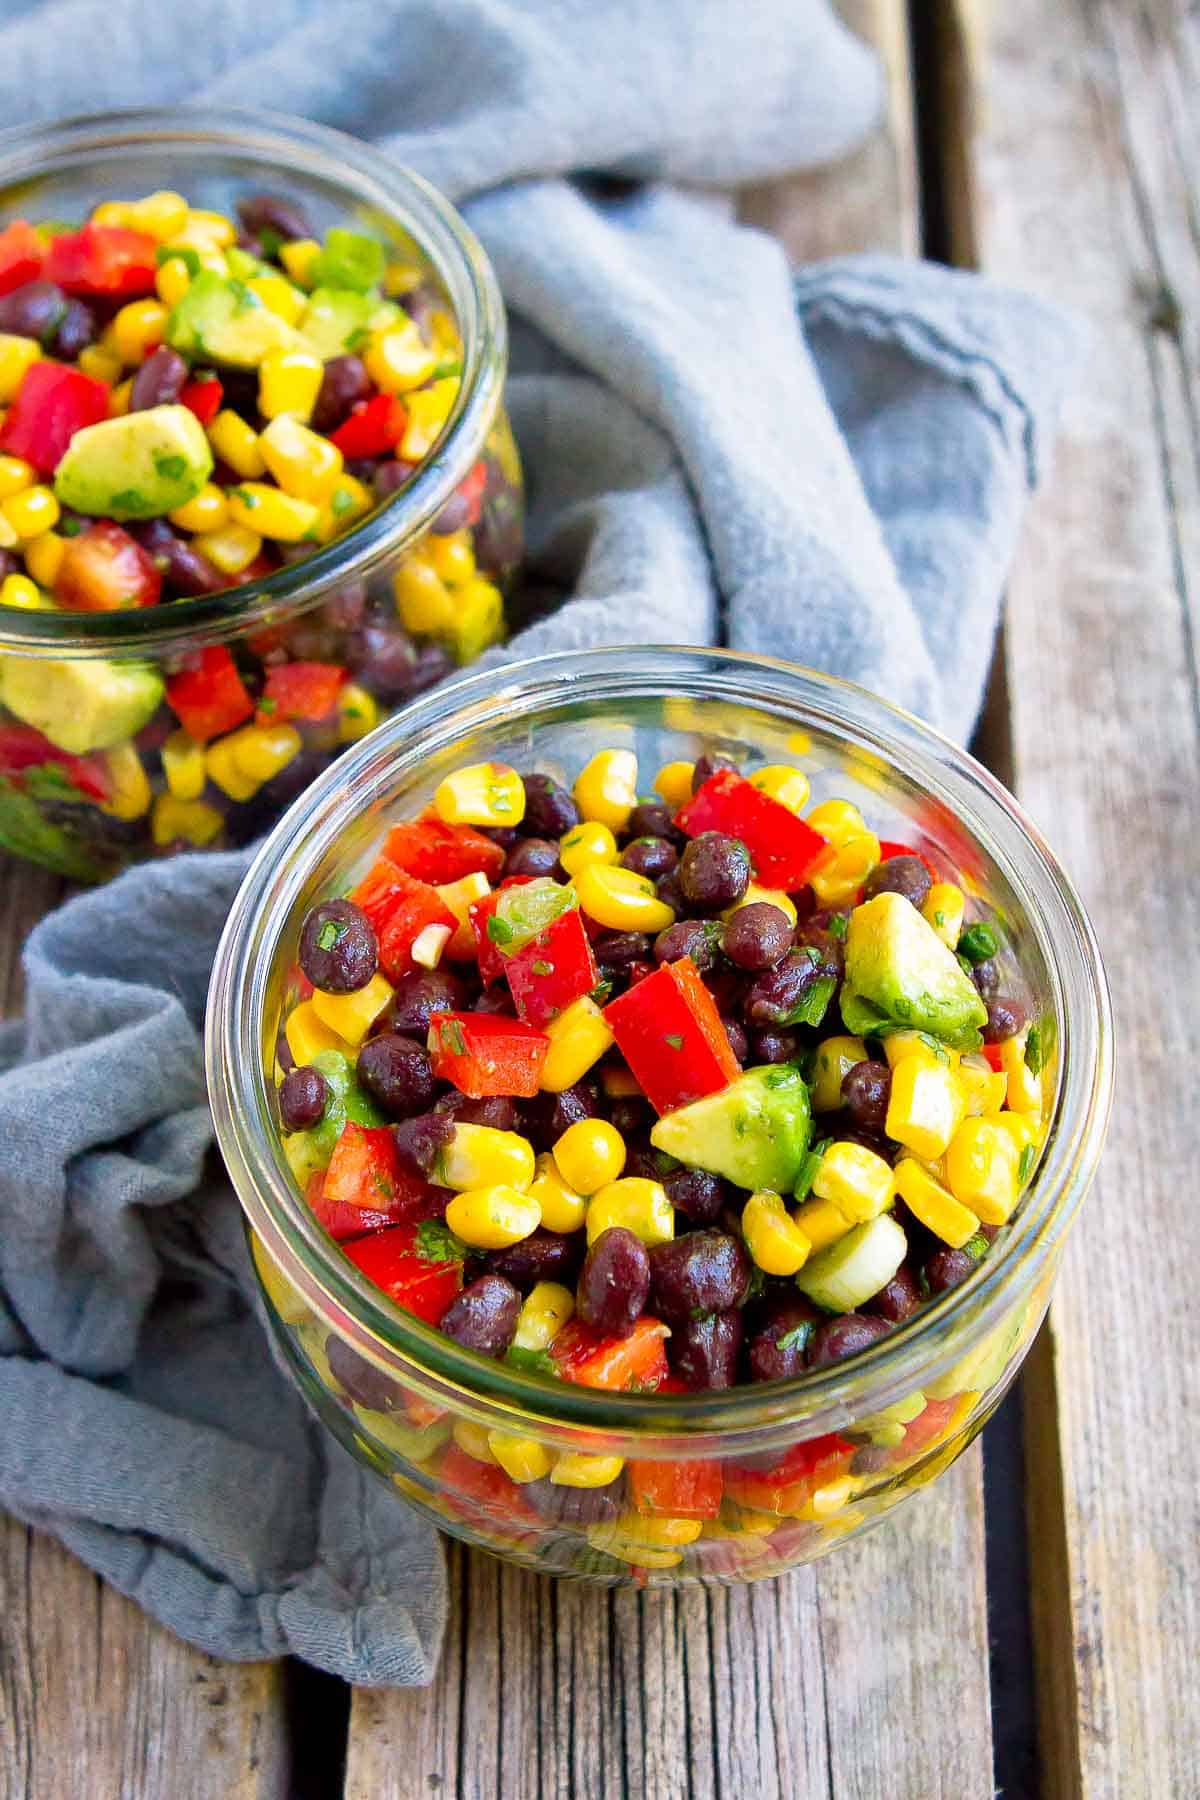 Corn, beans, peppers and avocado in canning jars, with gray napkin.